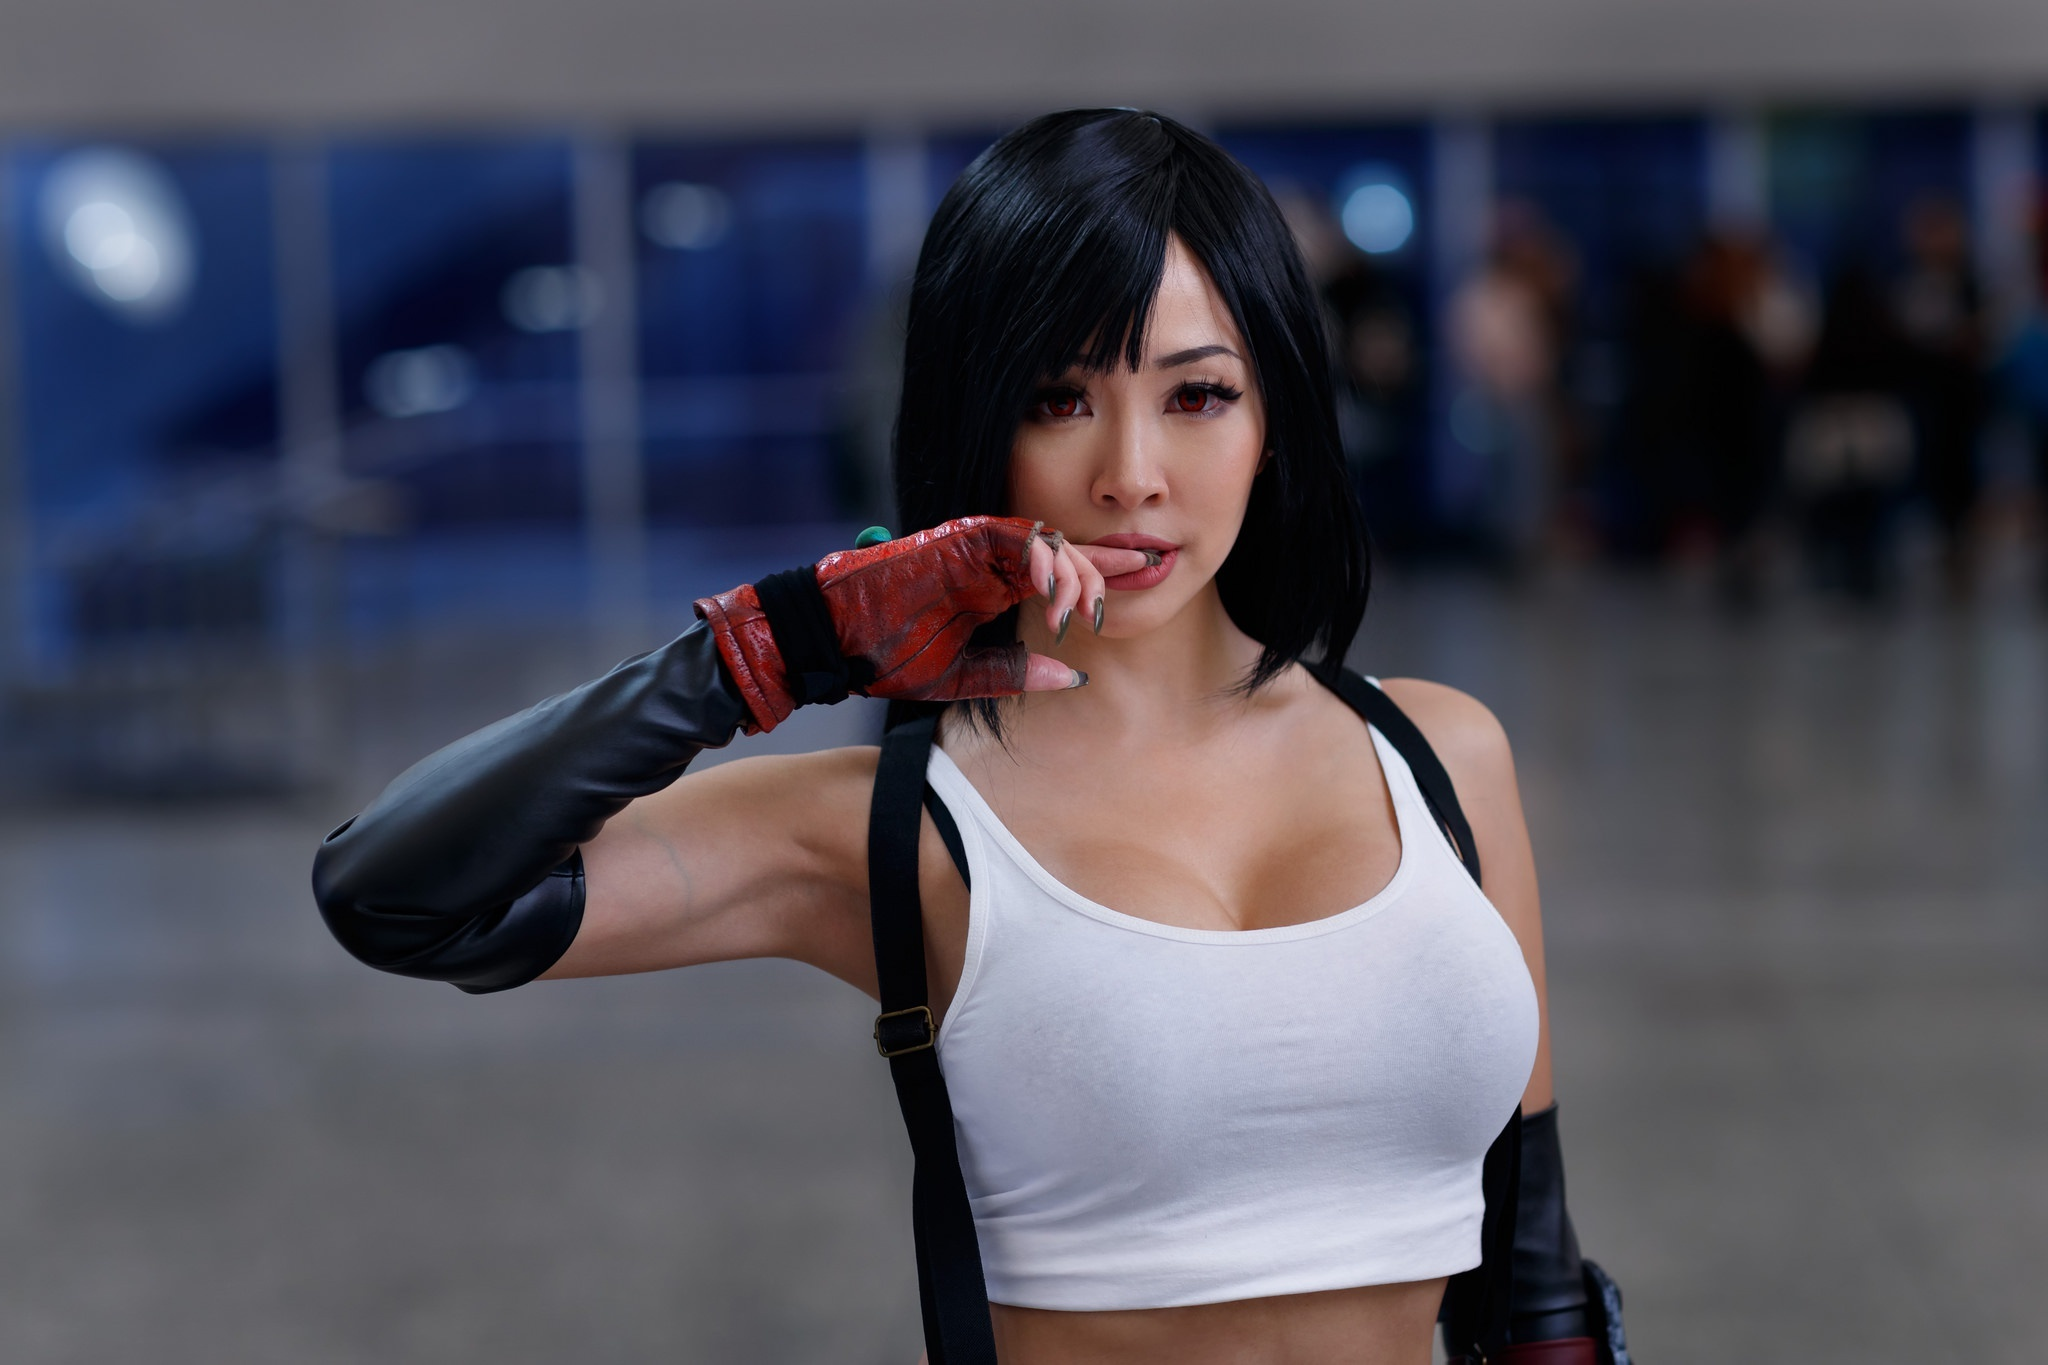 Image: Girl, asian, suit, cosplay, Tifa Lockhart, Final Fantasy VII